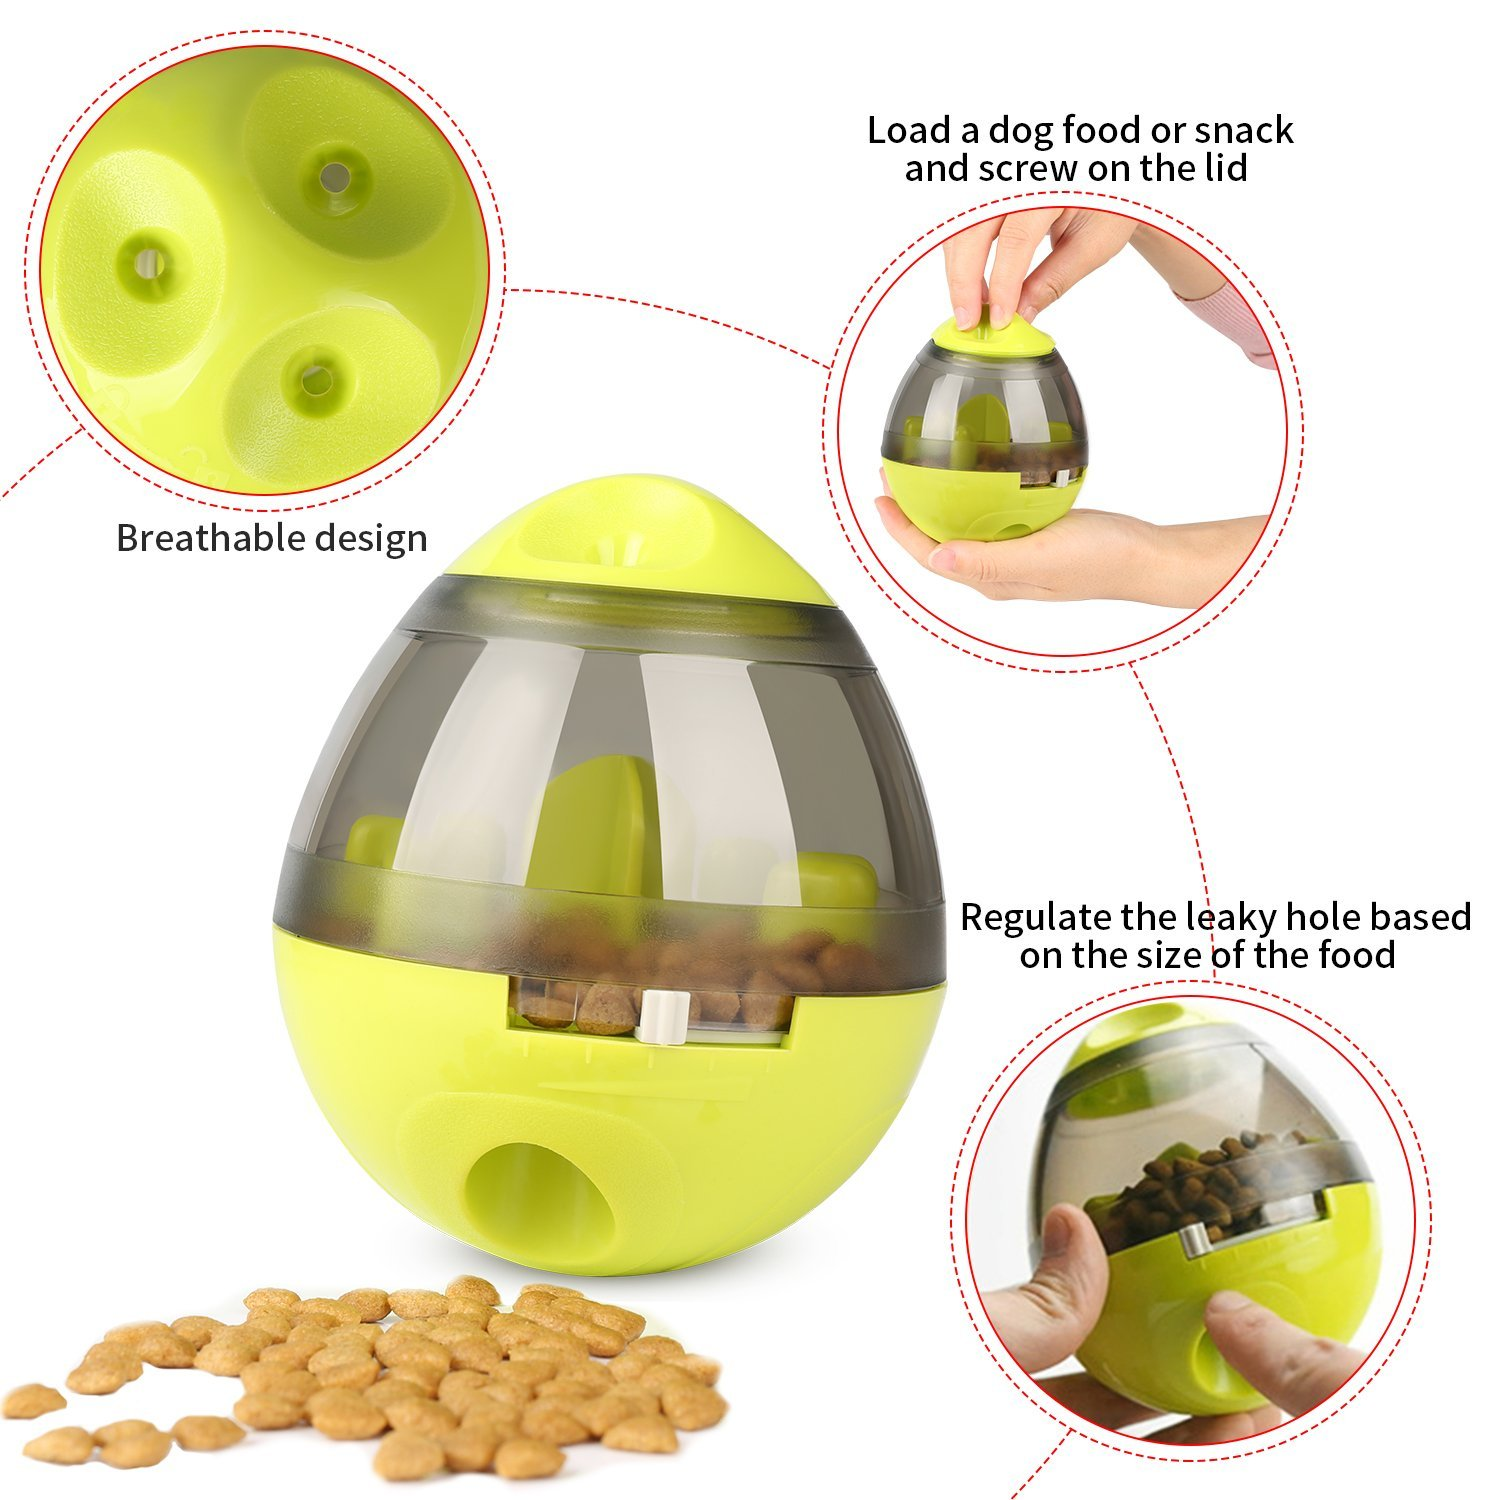 KAOSITONG Interactive Dog Toy,Interactive Food Dispensing Ball Dogs Cat Increases IQ & Mental Stimulation,Slows Down Eating,Promoting Active Healthy Feeding Small Medium Large Dogs,Easy to Clean by KAOSITONG (Image #4)